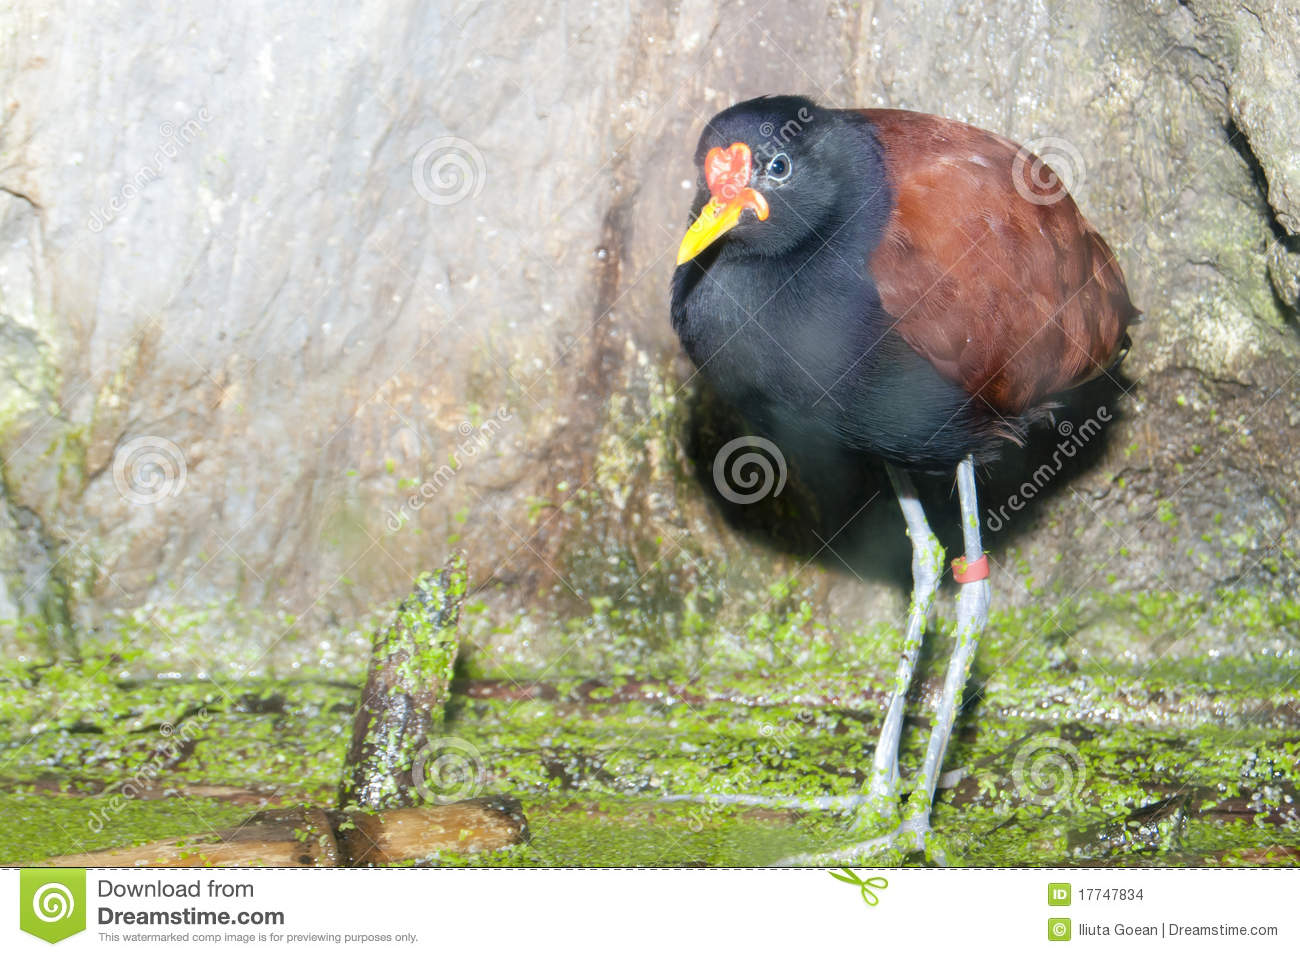 Wattled Jacana on water vegetation